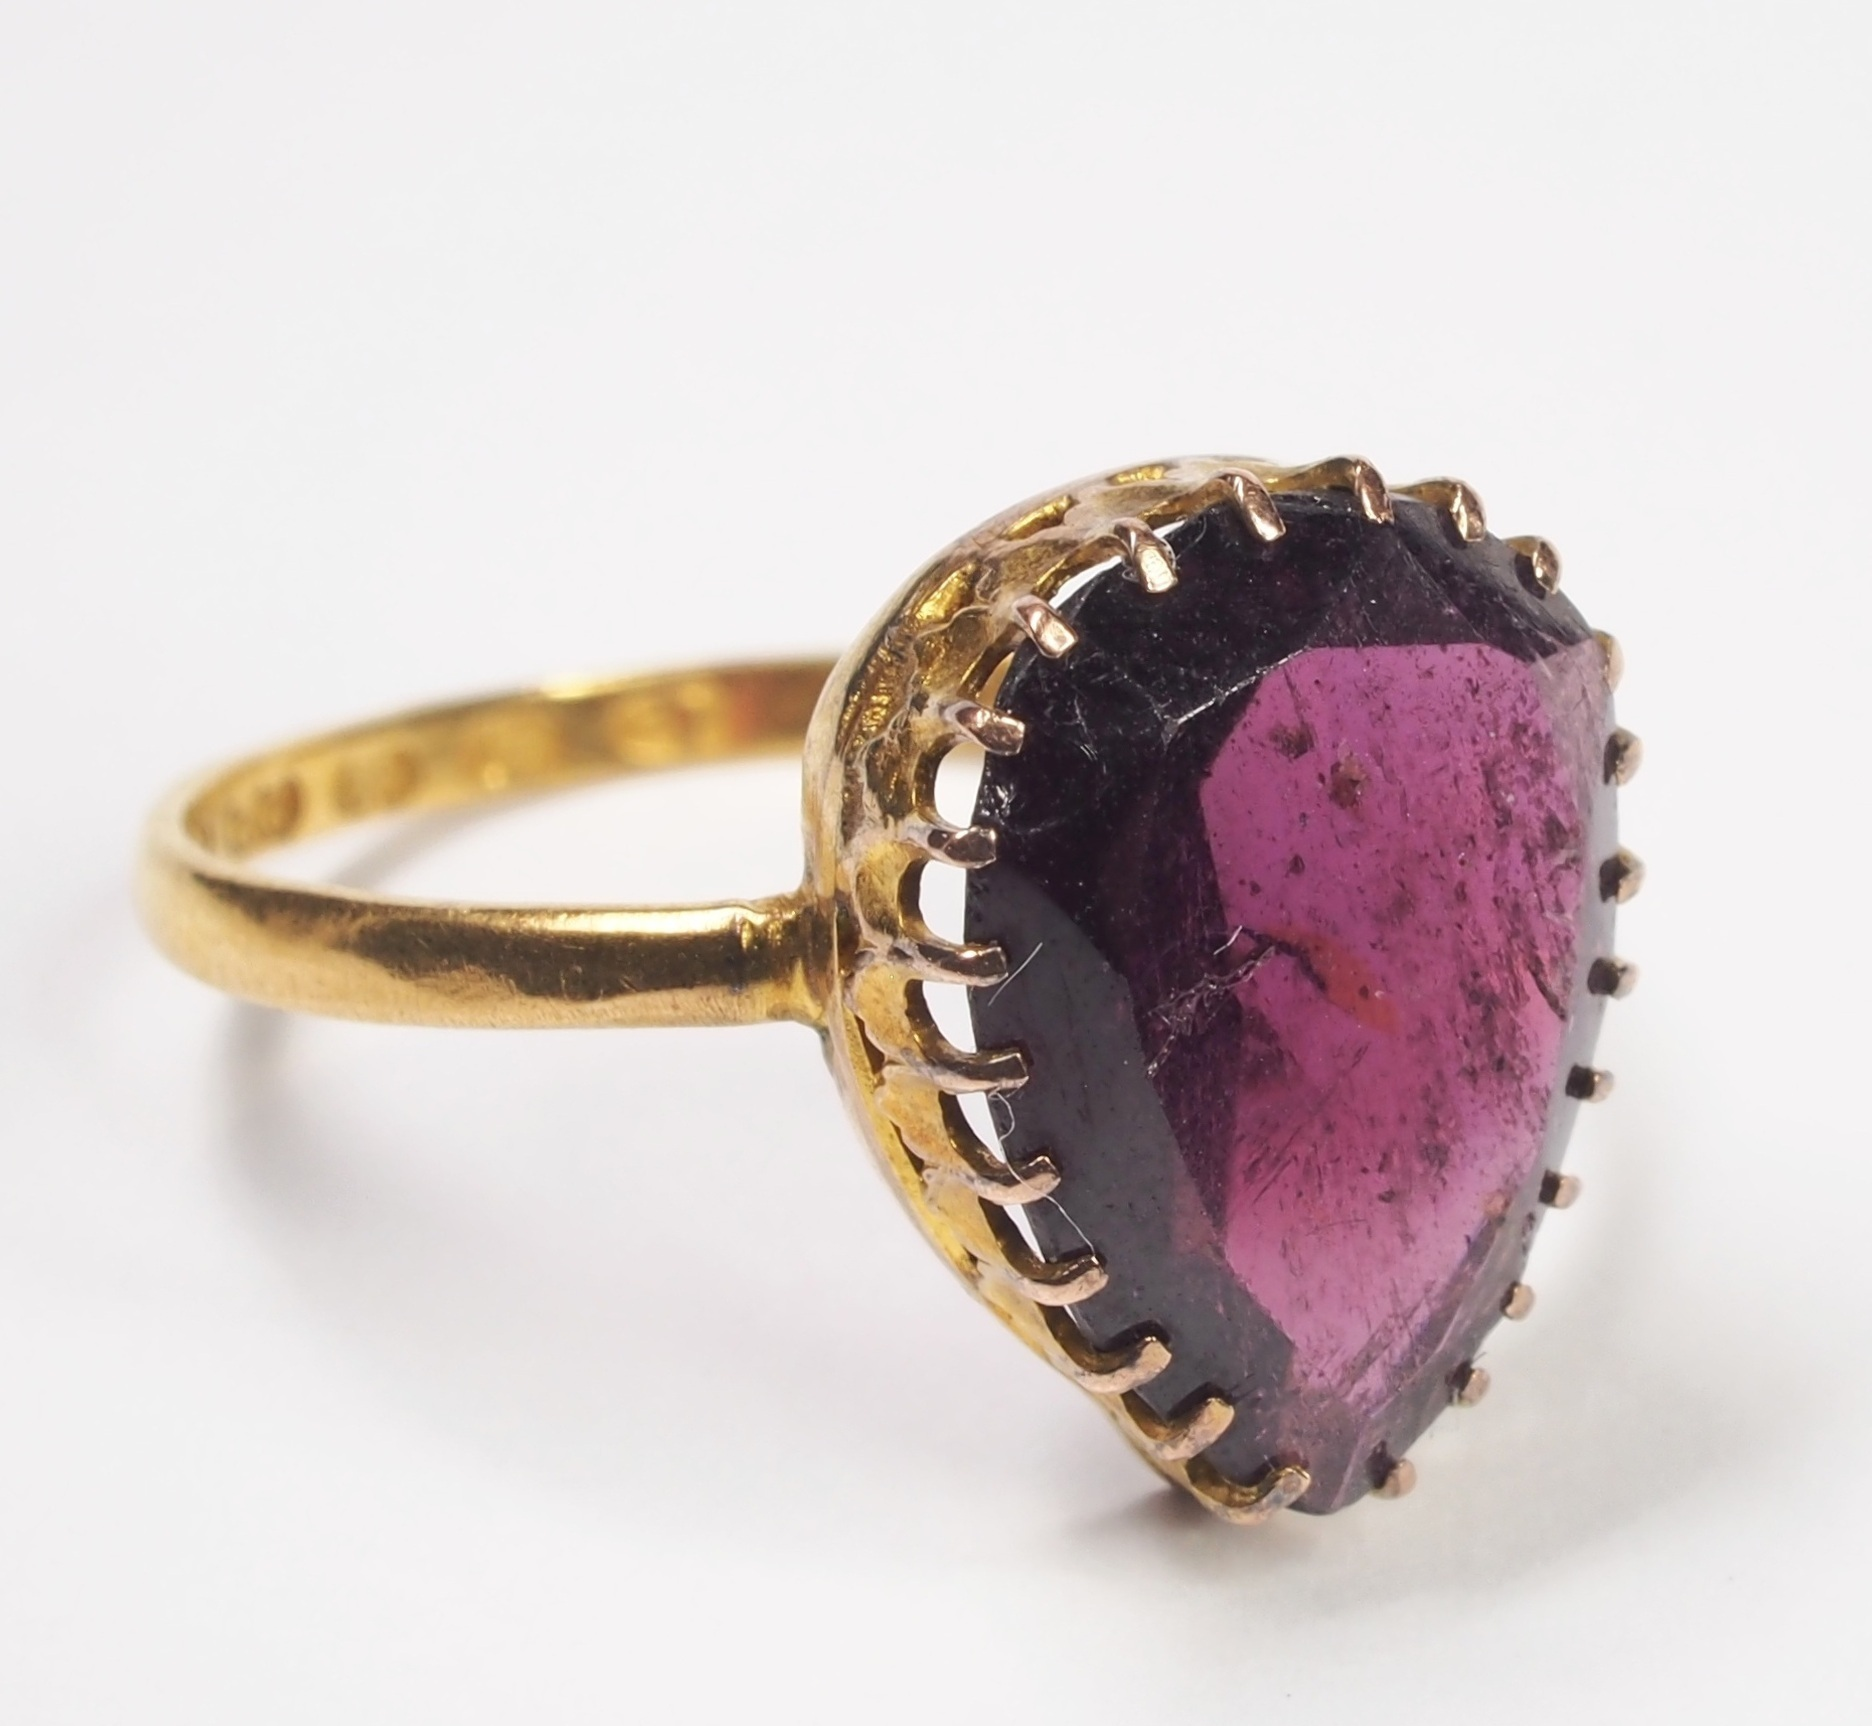 Genuine Antique - This is a genuine antique early Victorian 22ct yellow gold rhodolite garnet ring, made in England in 1847. It contains a rhodolite garnet which has suffered some small chips and has some surface pits and cracks, consistent with the age of the ring. The ring is handmade and the setting contains multiple claw tips that are quite finely shaped to hold the centre gem.